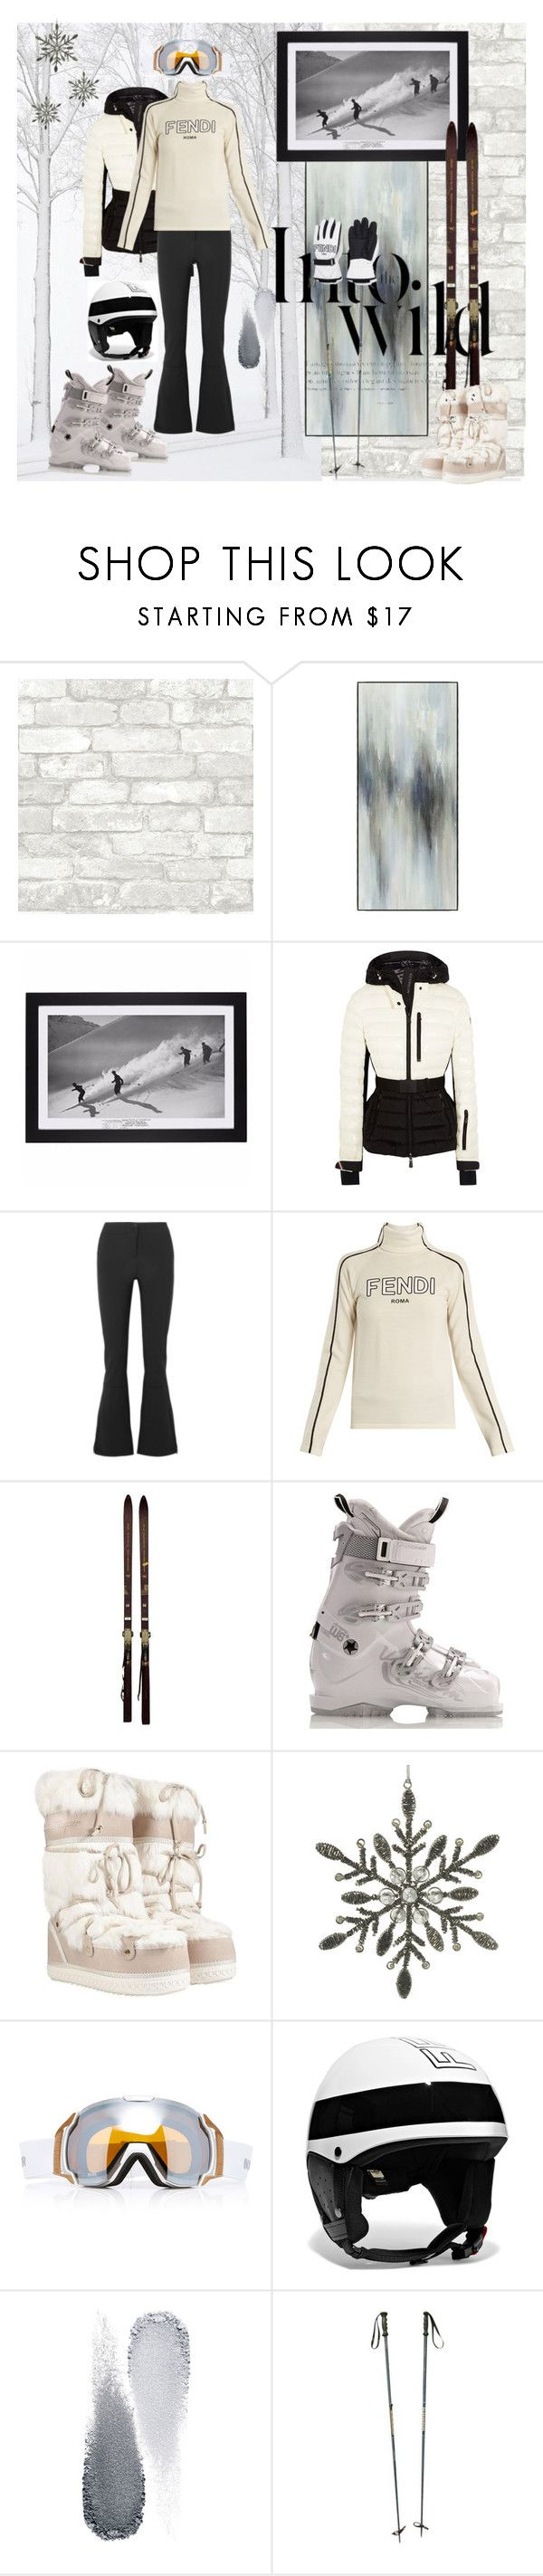 """The best work-out"" by wave-babe ❤ liked on Polyvore featuring Anja, Moncler Grenoble, Fusalp, Fendi, Rossignol, Soma, Salvatore Ferragamo, Parlane, Bogner and Clé de Peau Beauté"